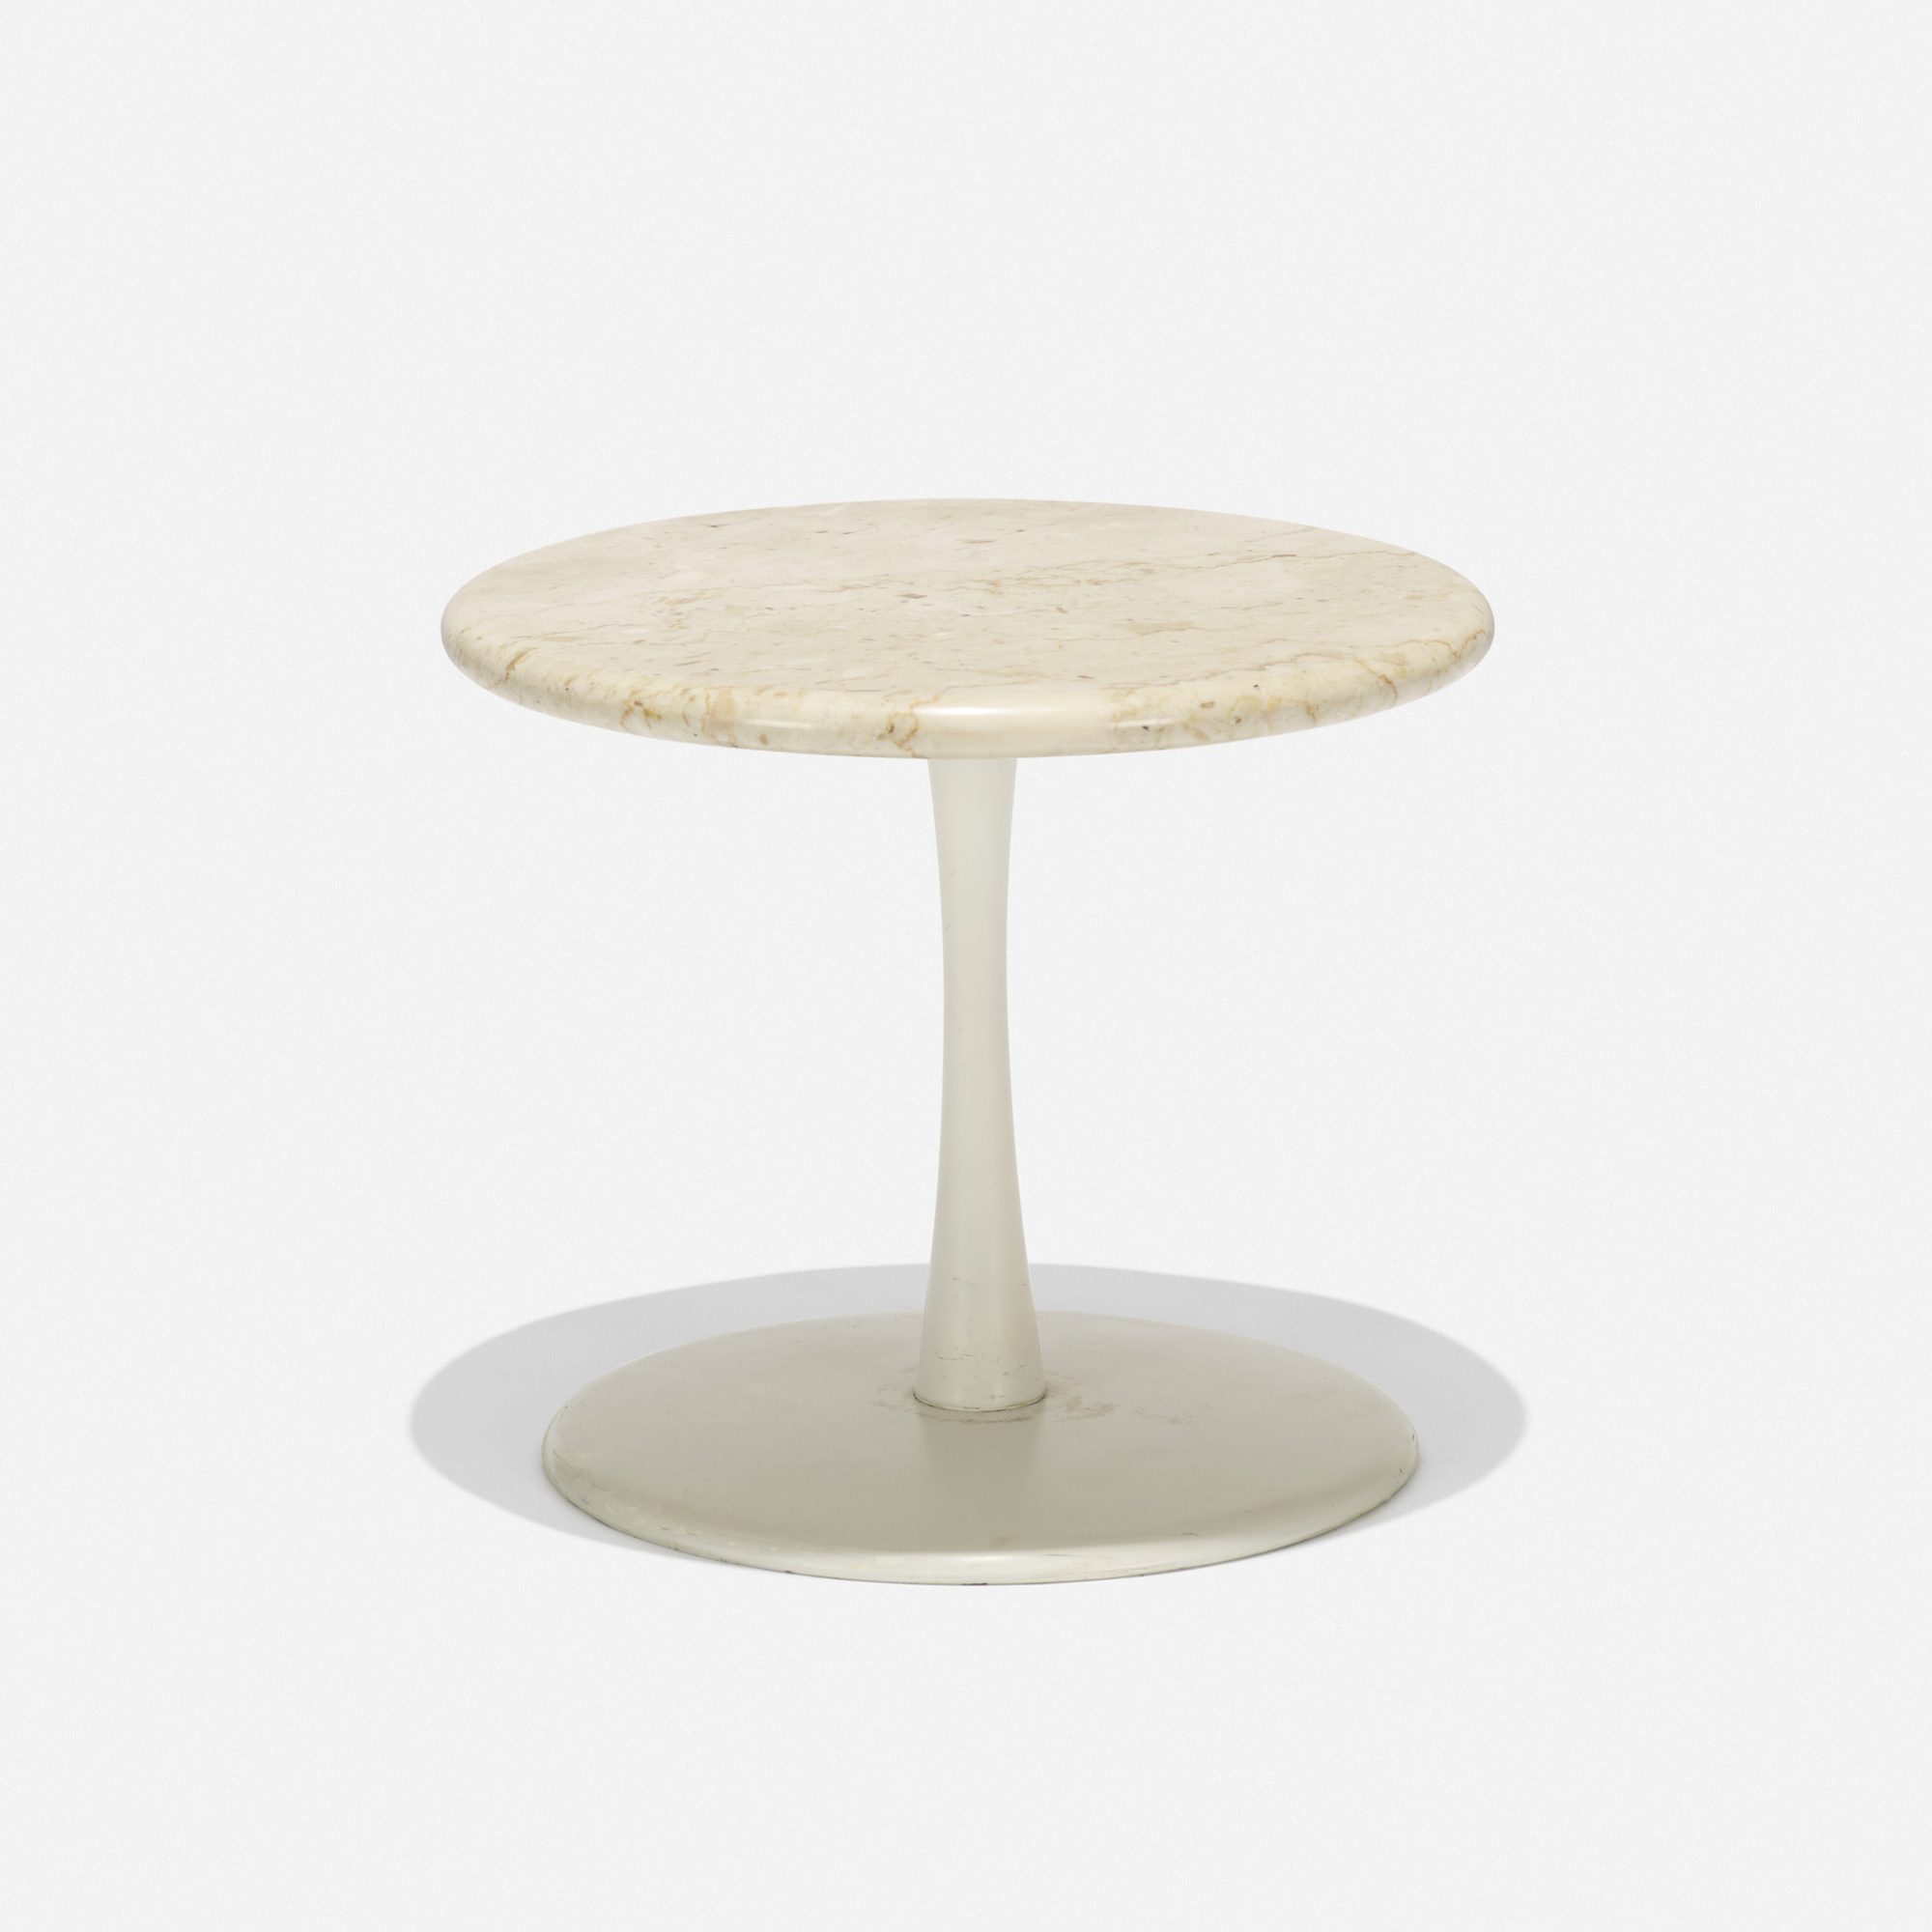 188: Erwine and Estelle Laverne / occasional table (1 of 2)